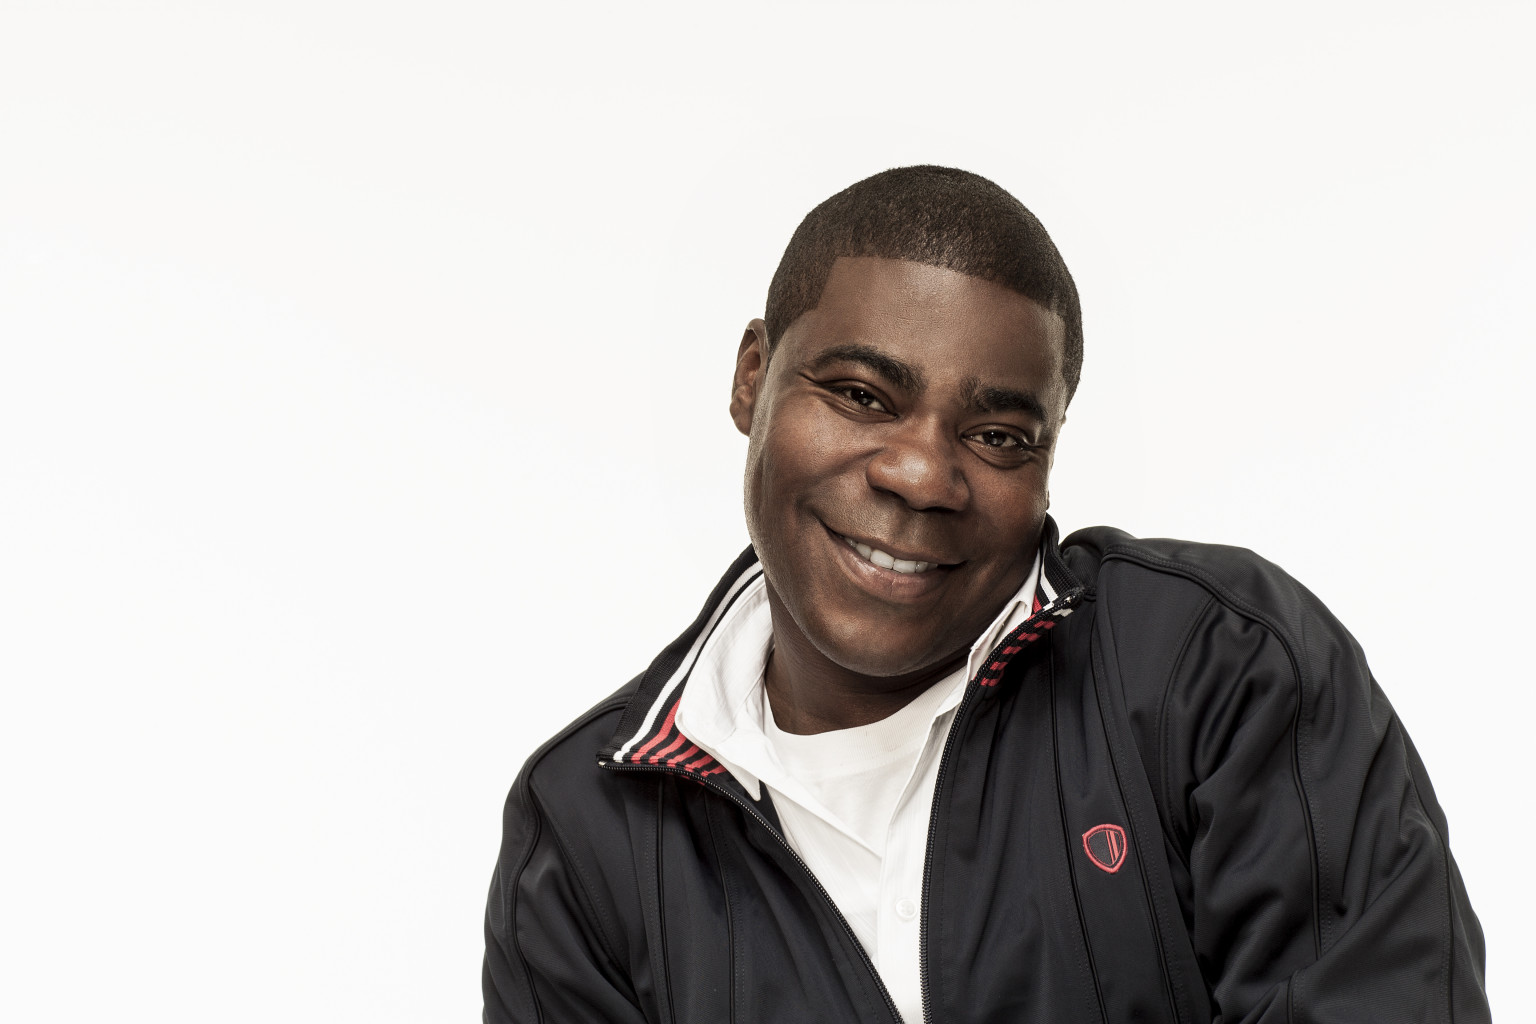 News Tracy Morgan Does First Stand Up Routine Since